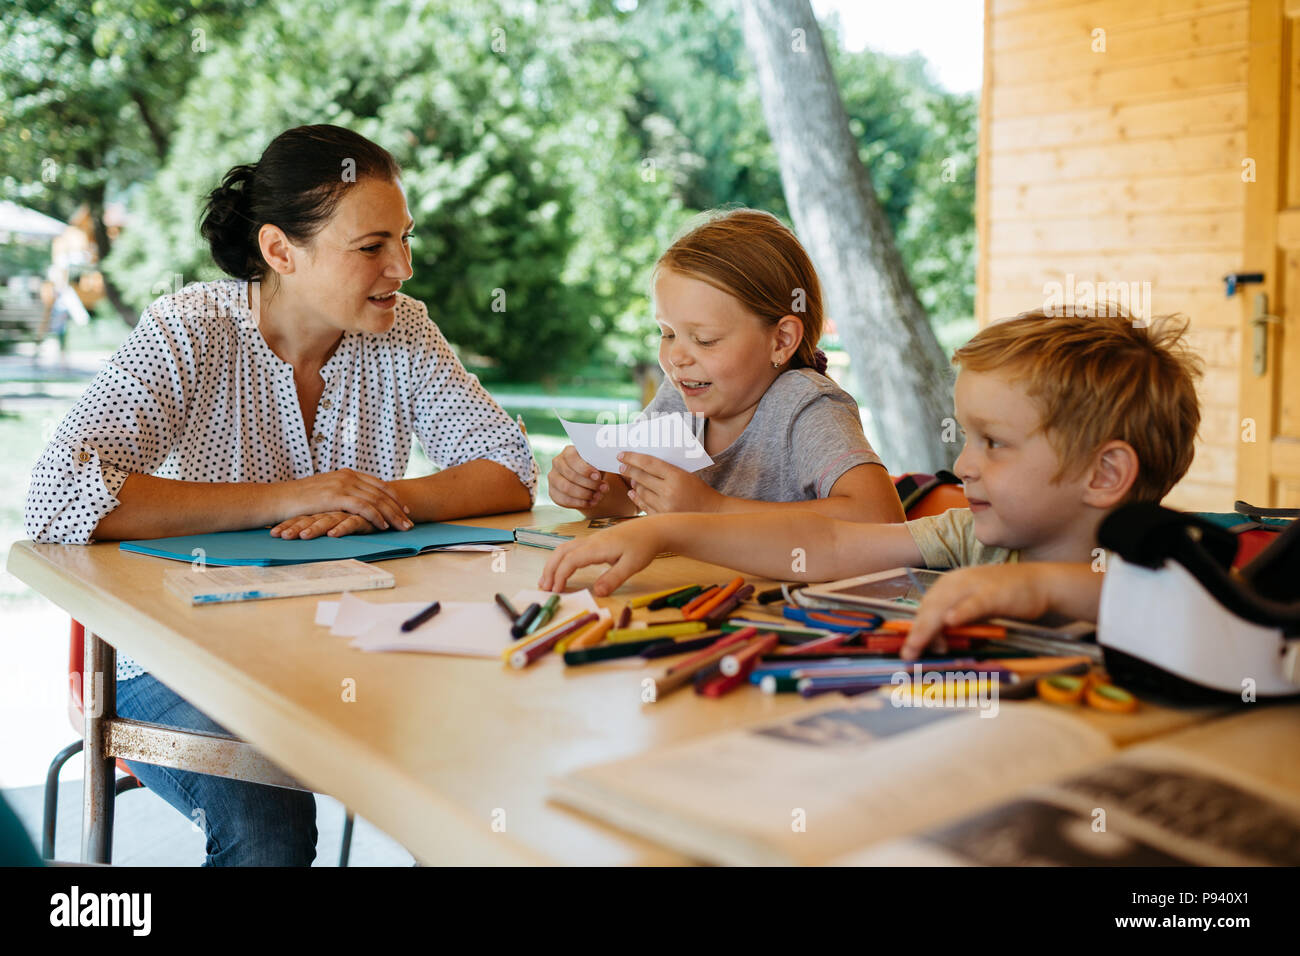 Outdoor learning - educational concept. Young students learning together with their mother outside in a park. - Stock Image